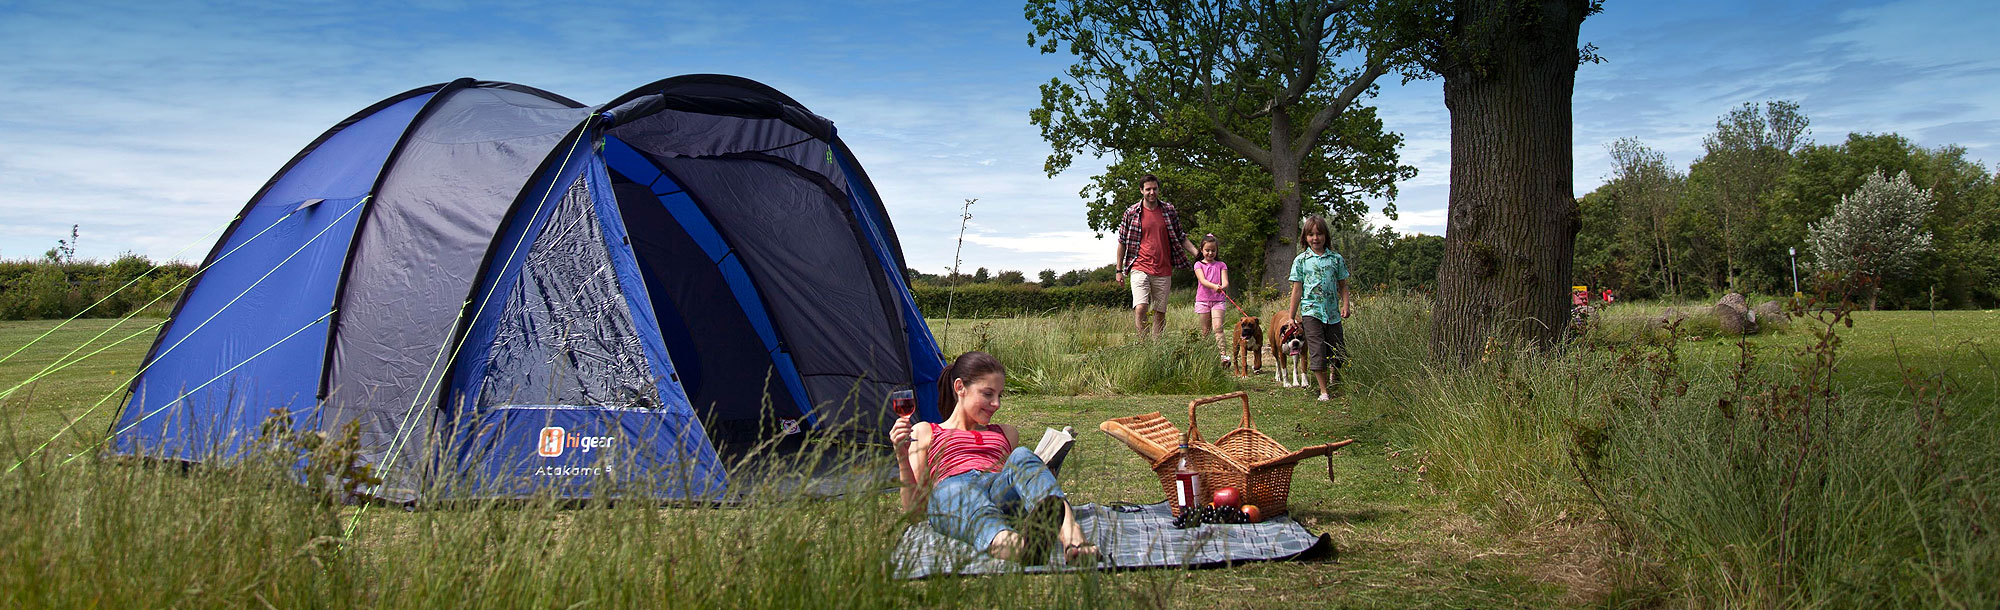 Essex campsite - pitches for tents